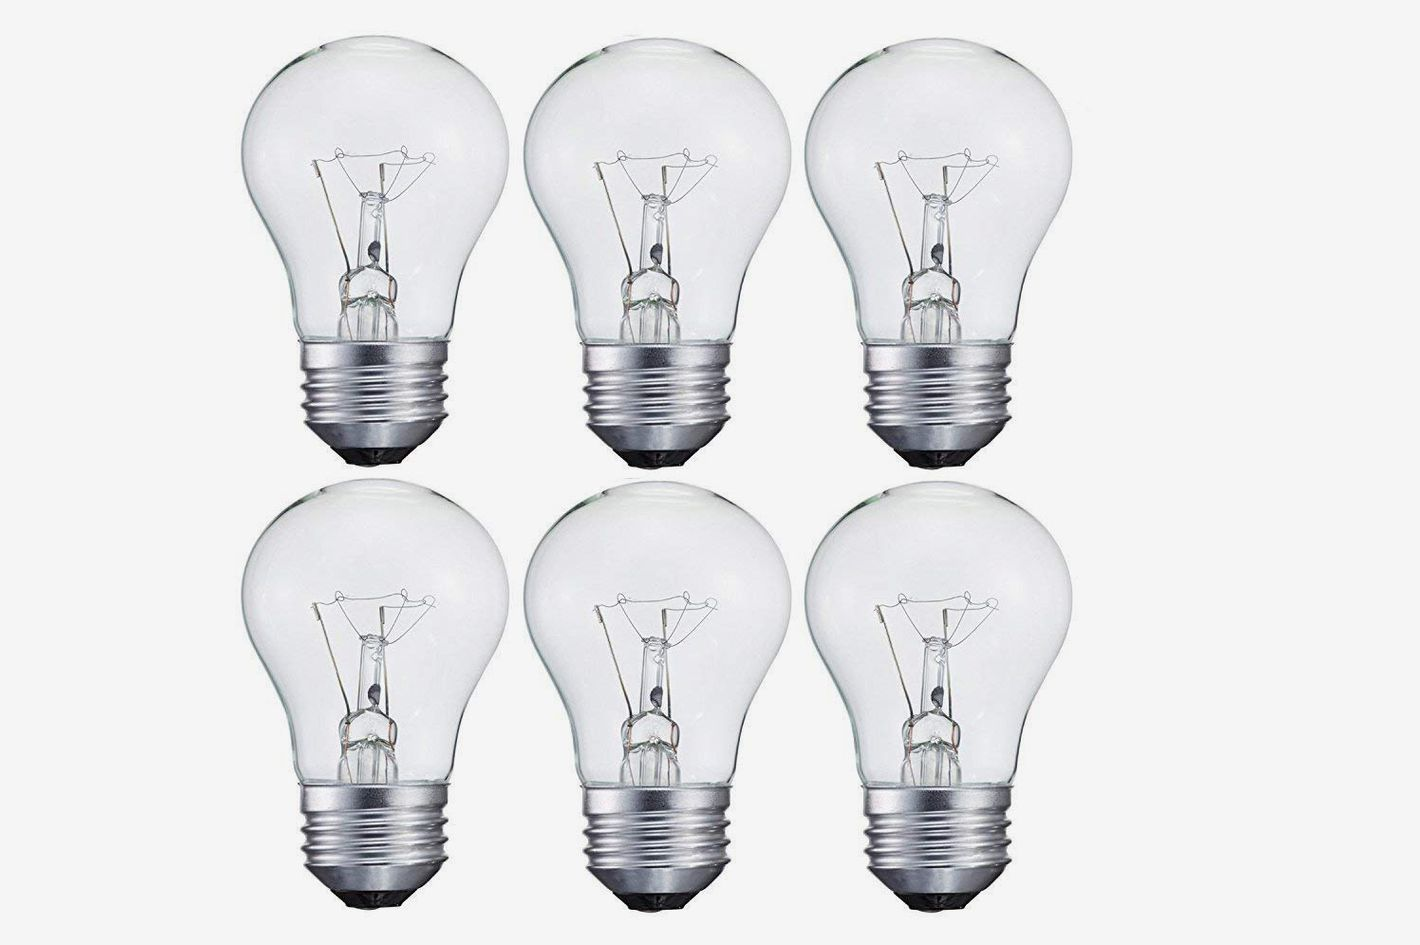 15-Watt Decorative A15 Incandescent Light Bulb, 6-Pack